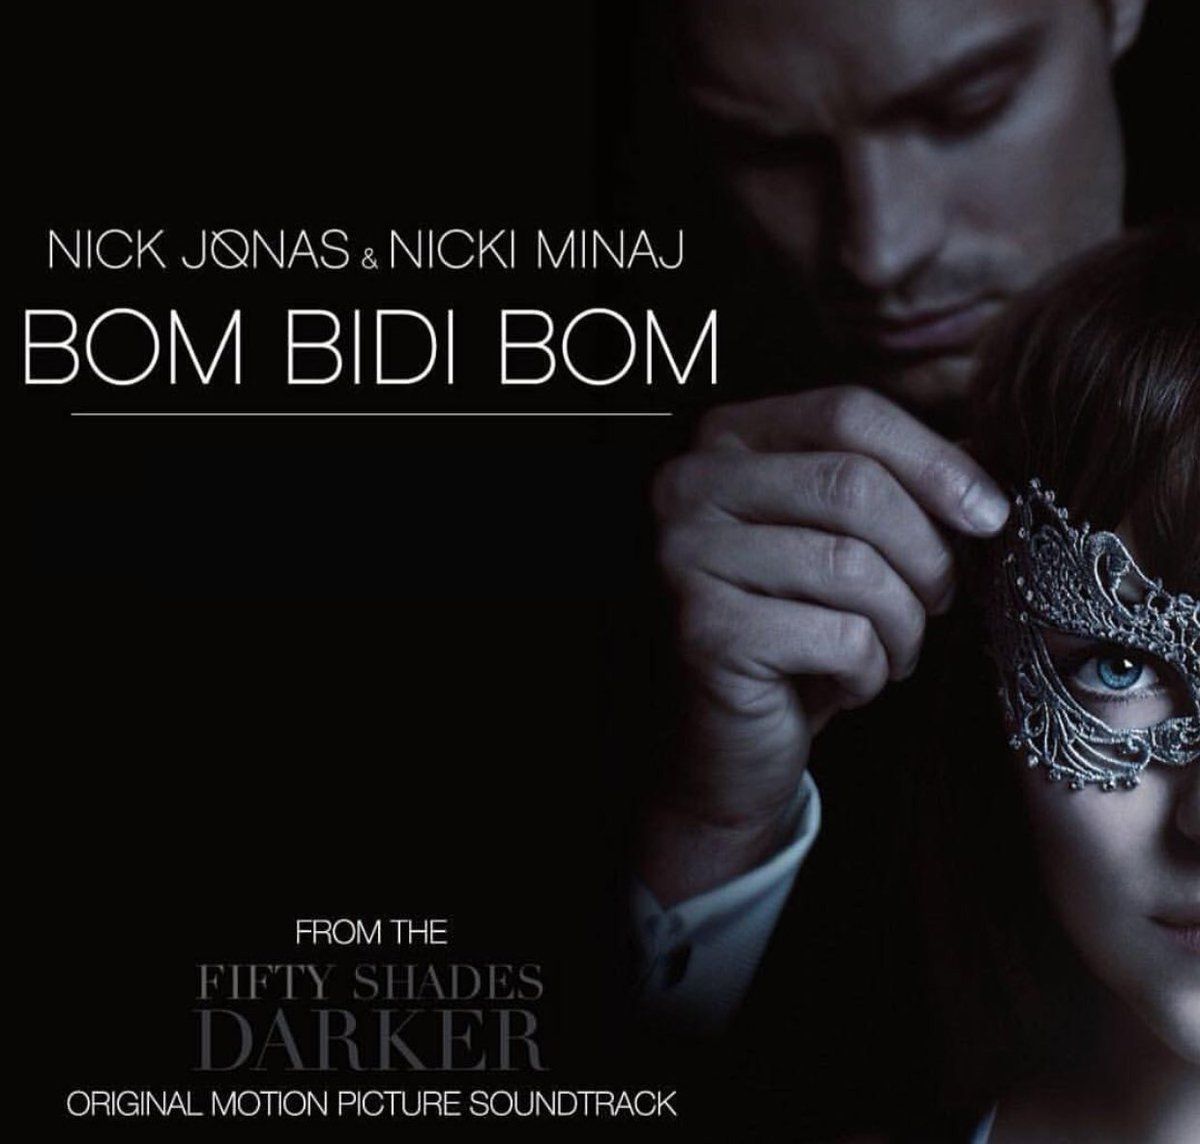 Nicki Minaj Bom Bidi Bom Lyrics Latest News Explorer